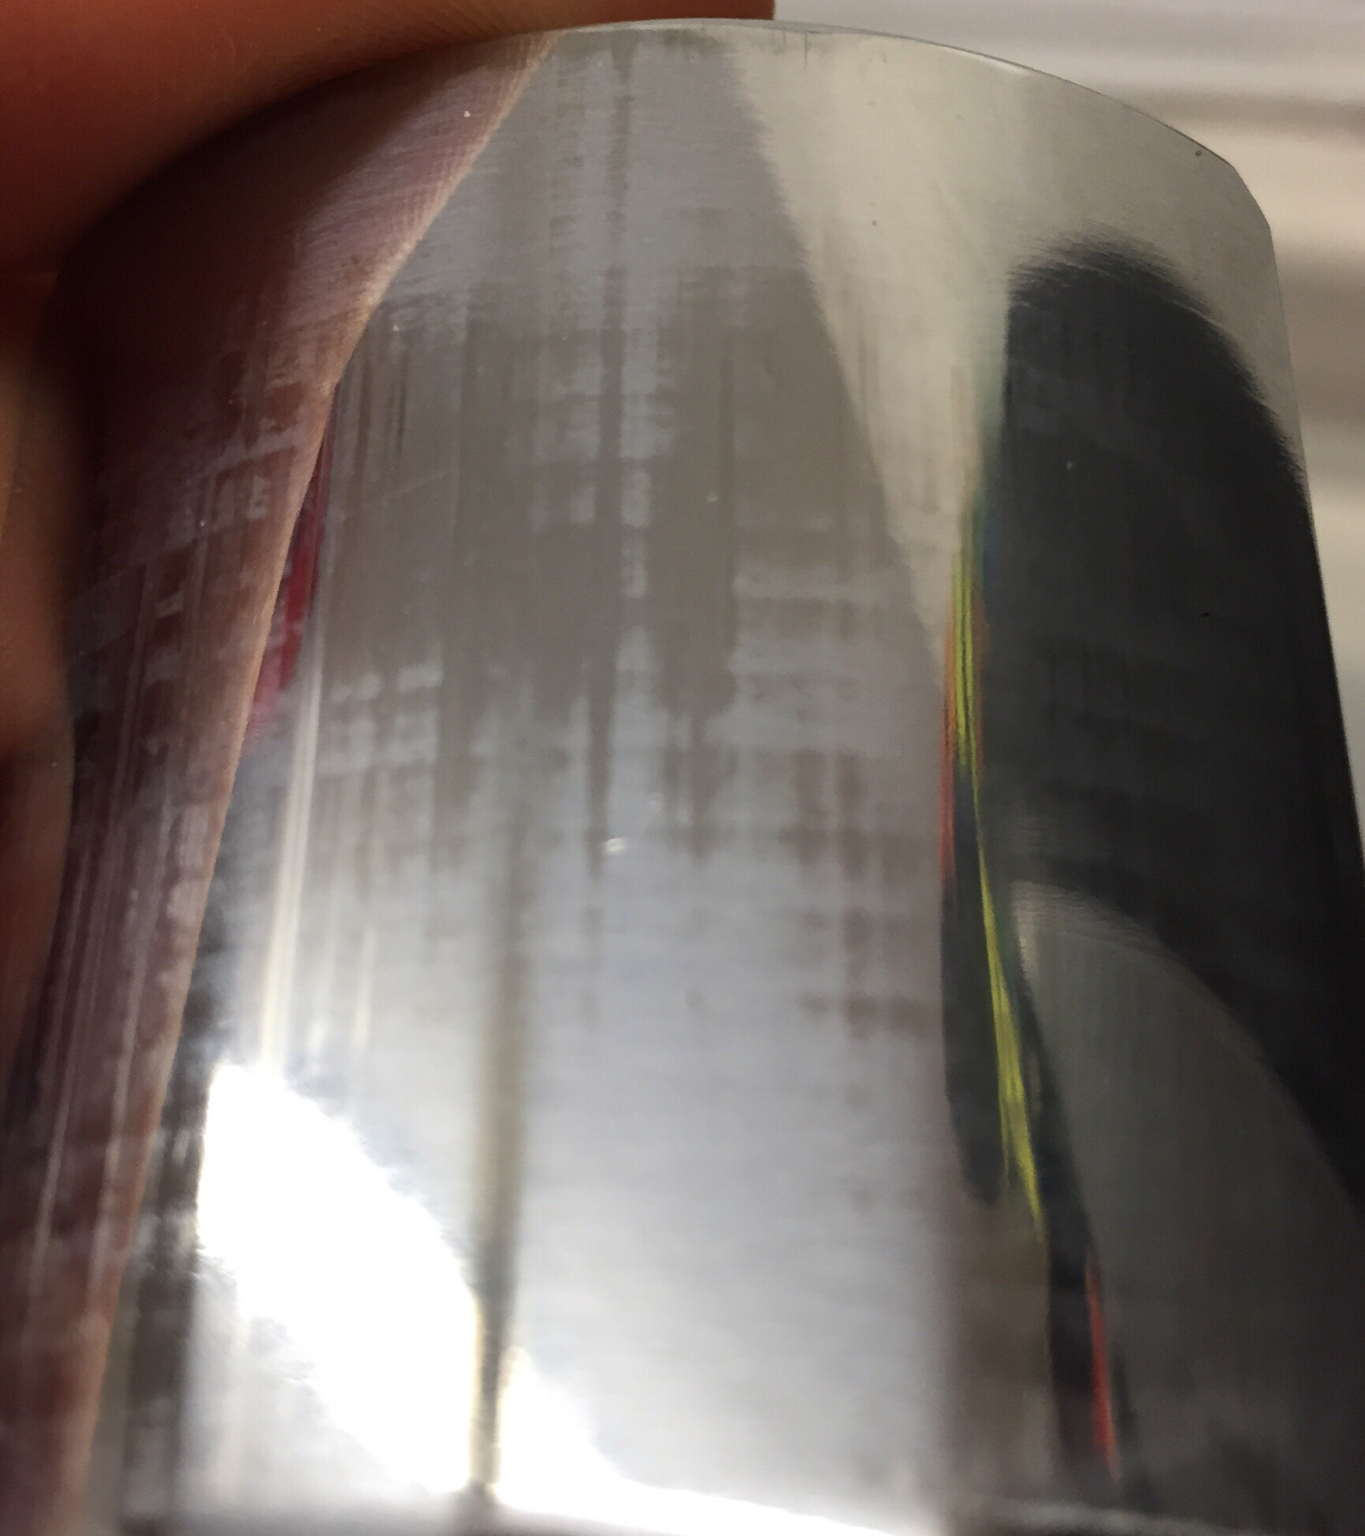 Carb body and slide scratches and wear - Motorcycle Jetting